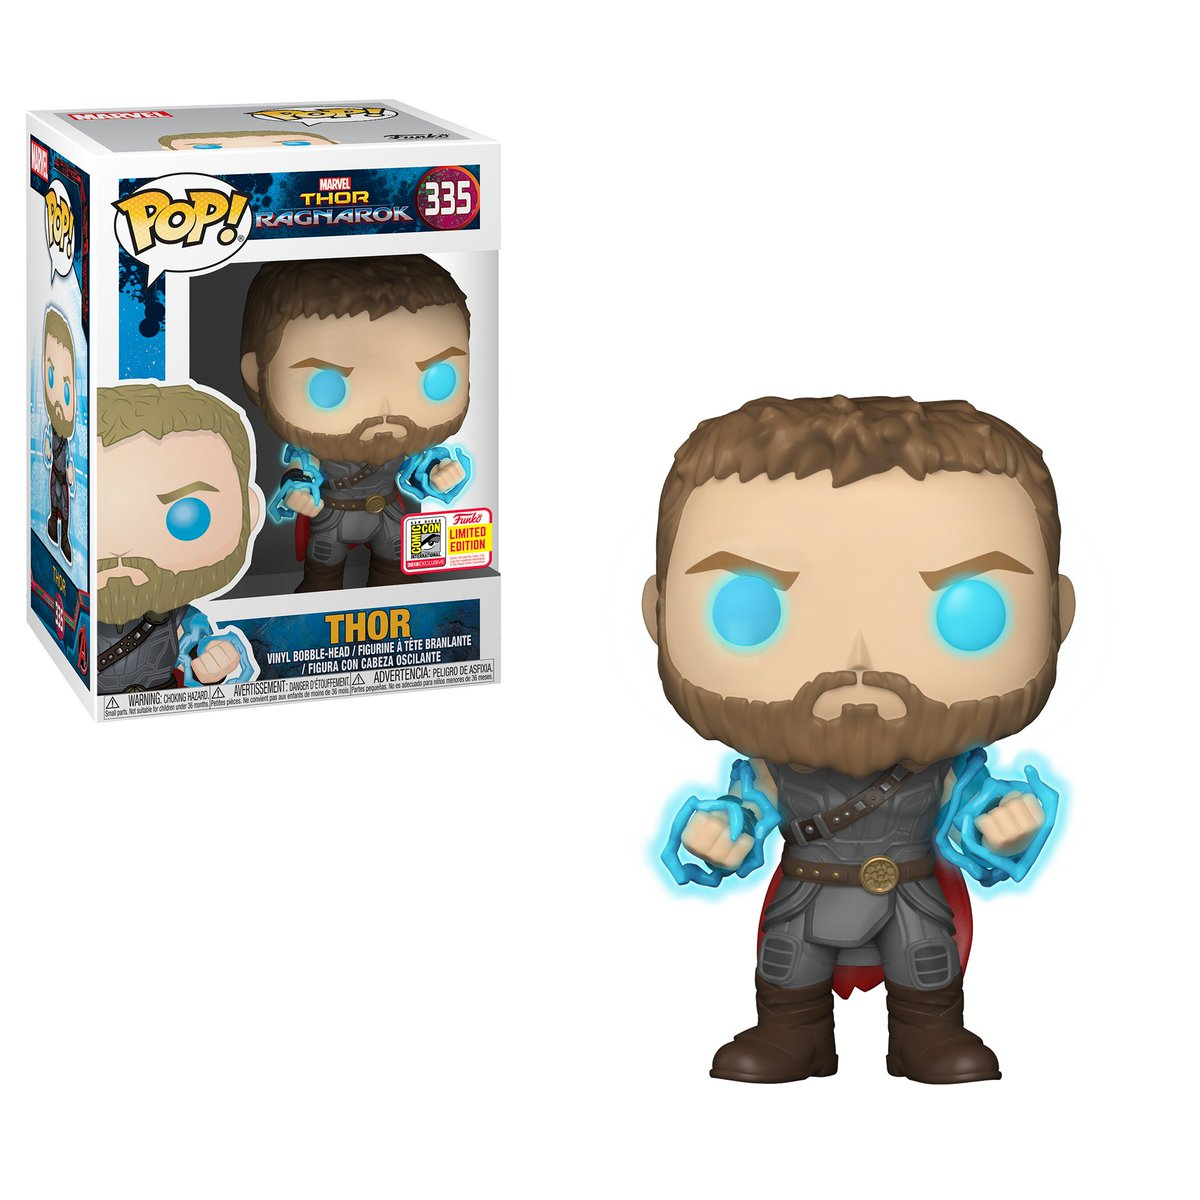 RT & follow @OriginalFunko for the chance to win an #SDCC 2018 exclusive Thor Pop! #FunkoSDCC